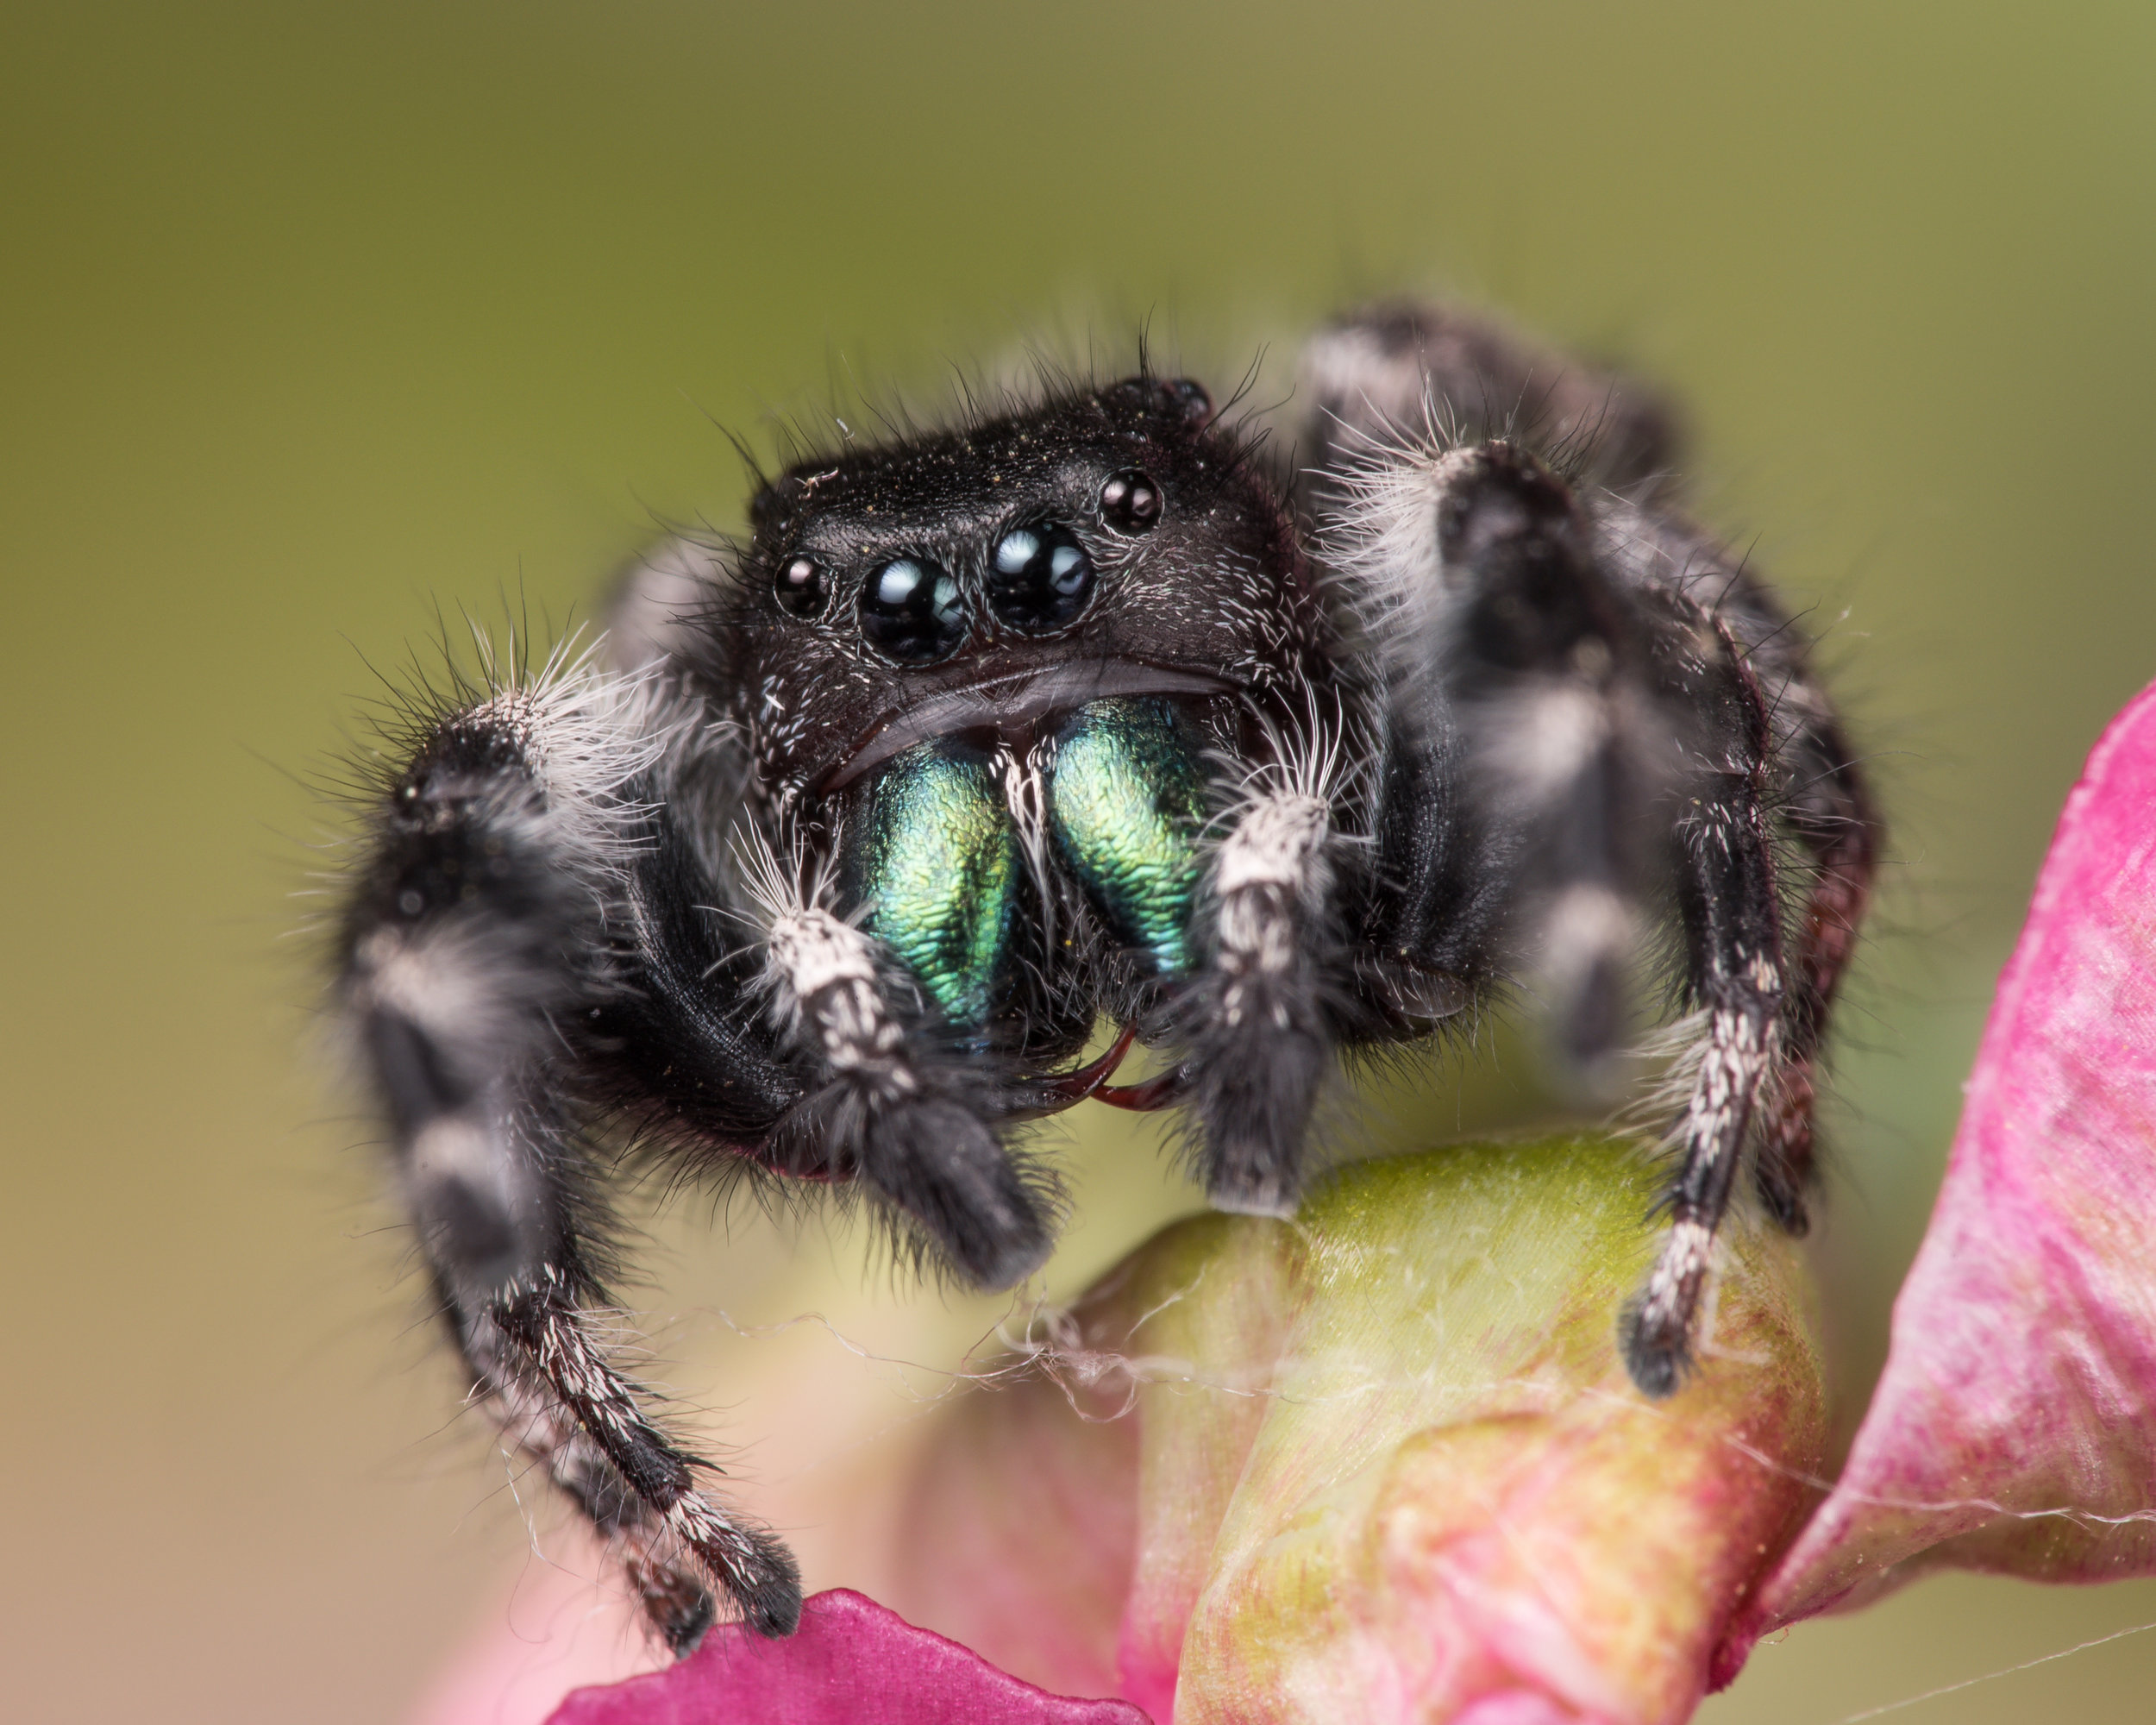 """The Bold"" Jumping Spider - Nikon D750, Tamron SP 90mm F/2.8 MACRO VC, Raynox DCR-250 and KX-800 Twin Light Macro Flash"